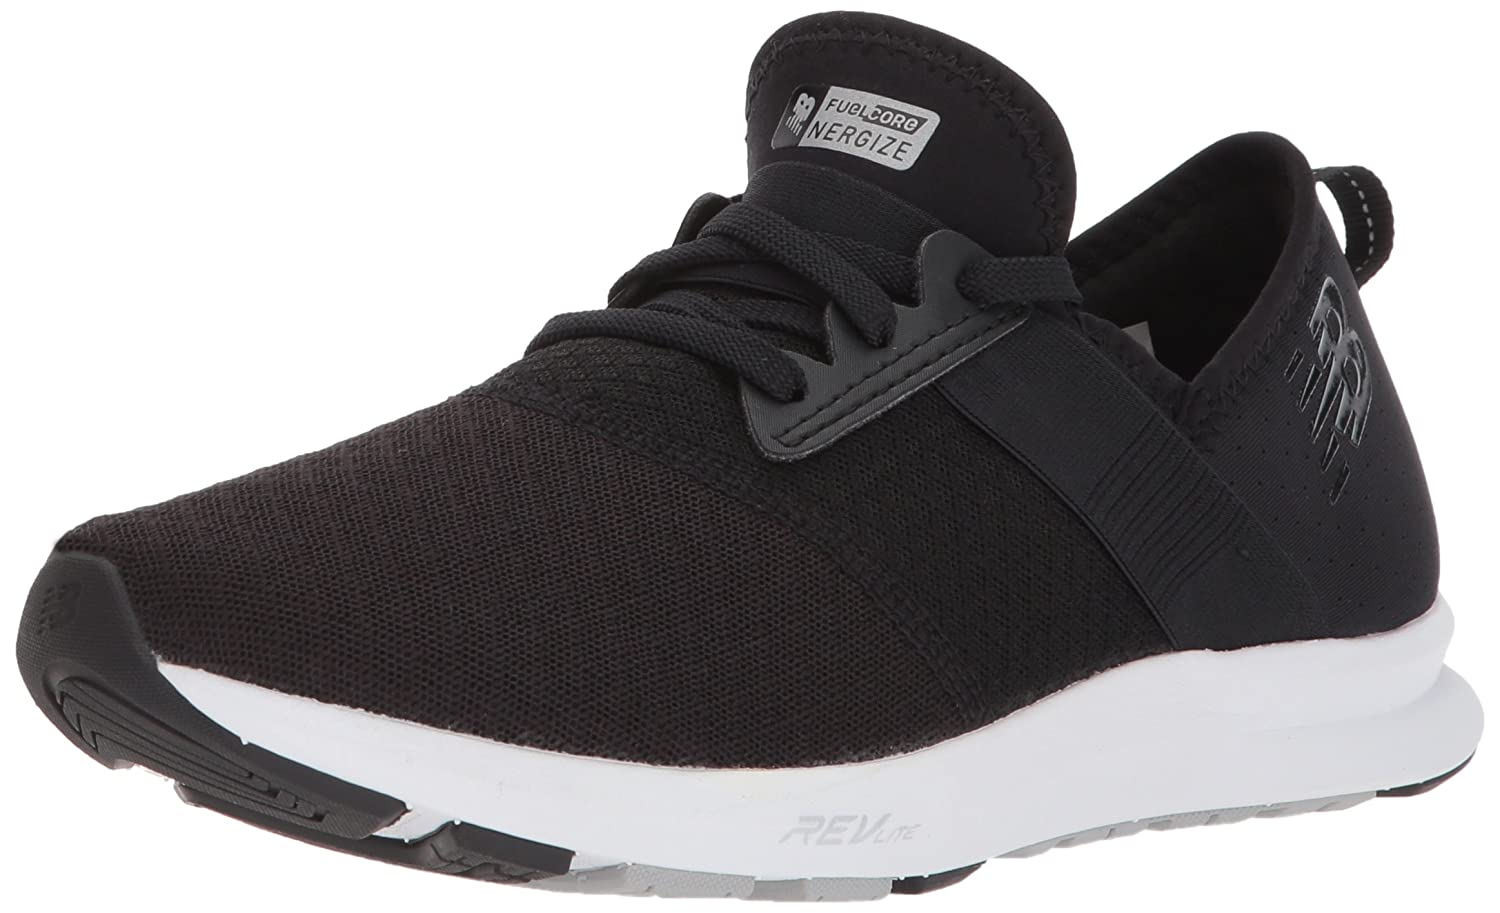 New Balance Women's FuelCore Nergize V1 Fuel Core Cross Trainer B06XRSQCLL 8 B(M) US|Dark Black